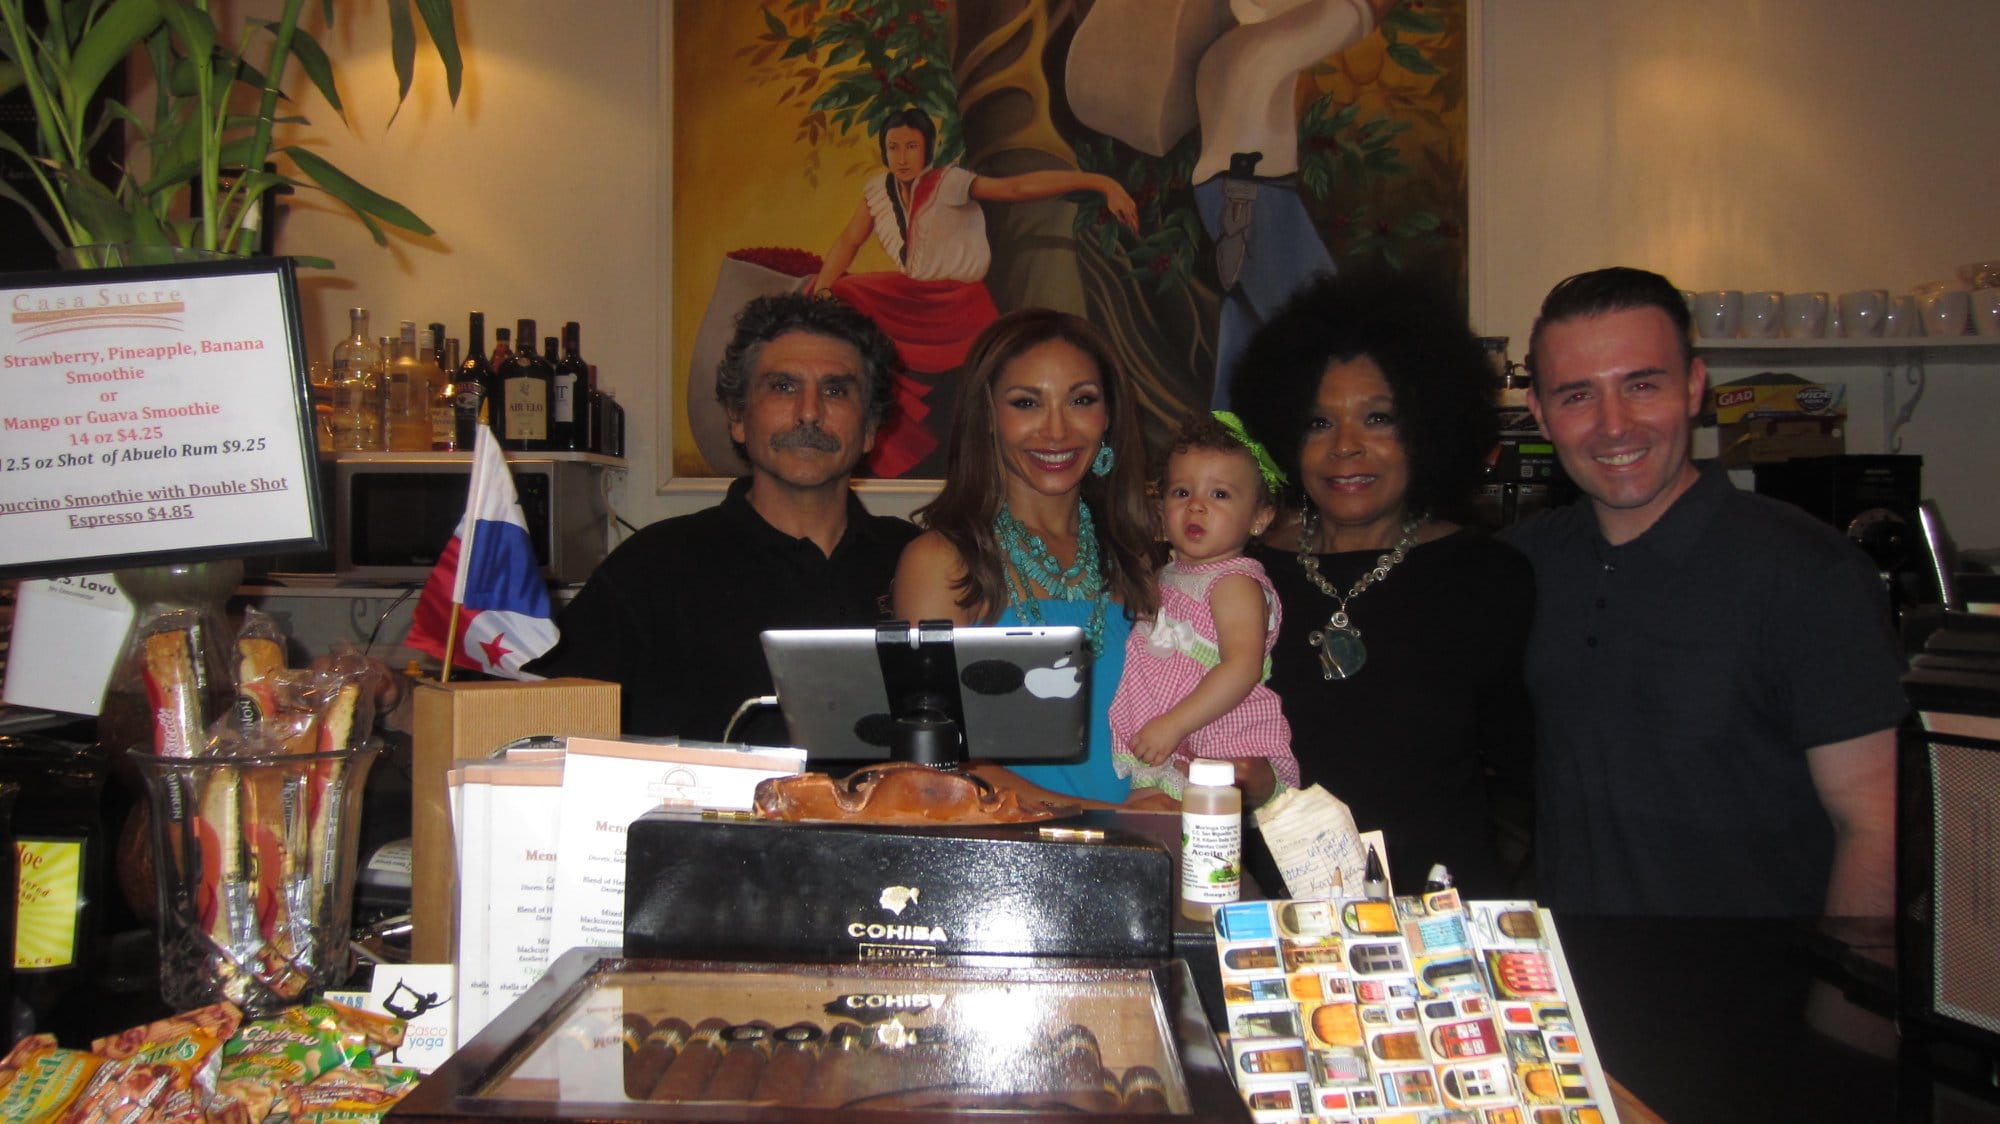 Sherman family will be hosting you at Casa Sucre Boutique Hotel and Coffeehouse